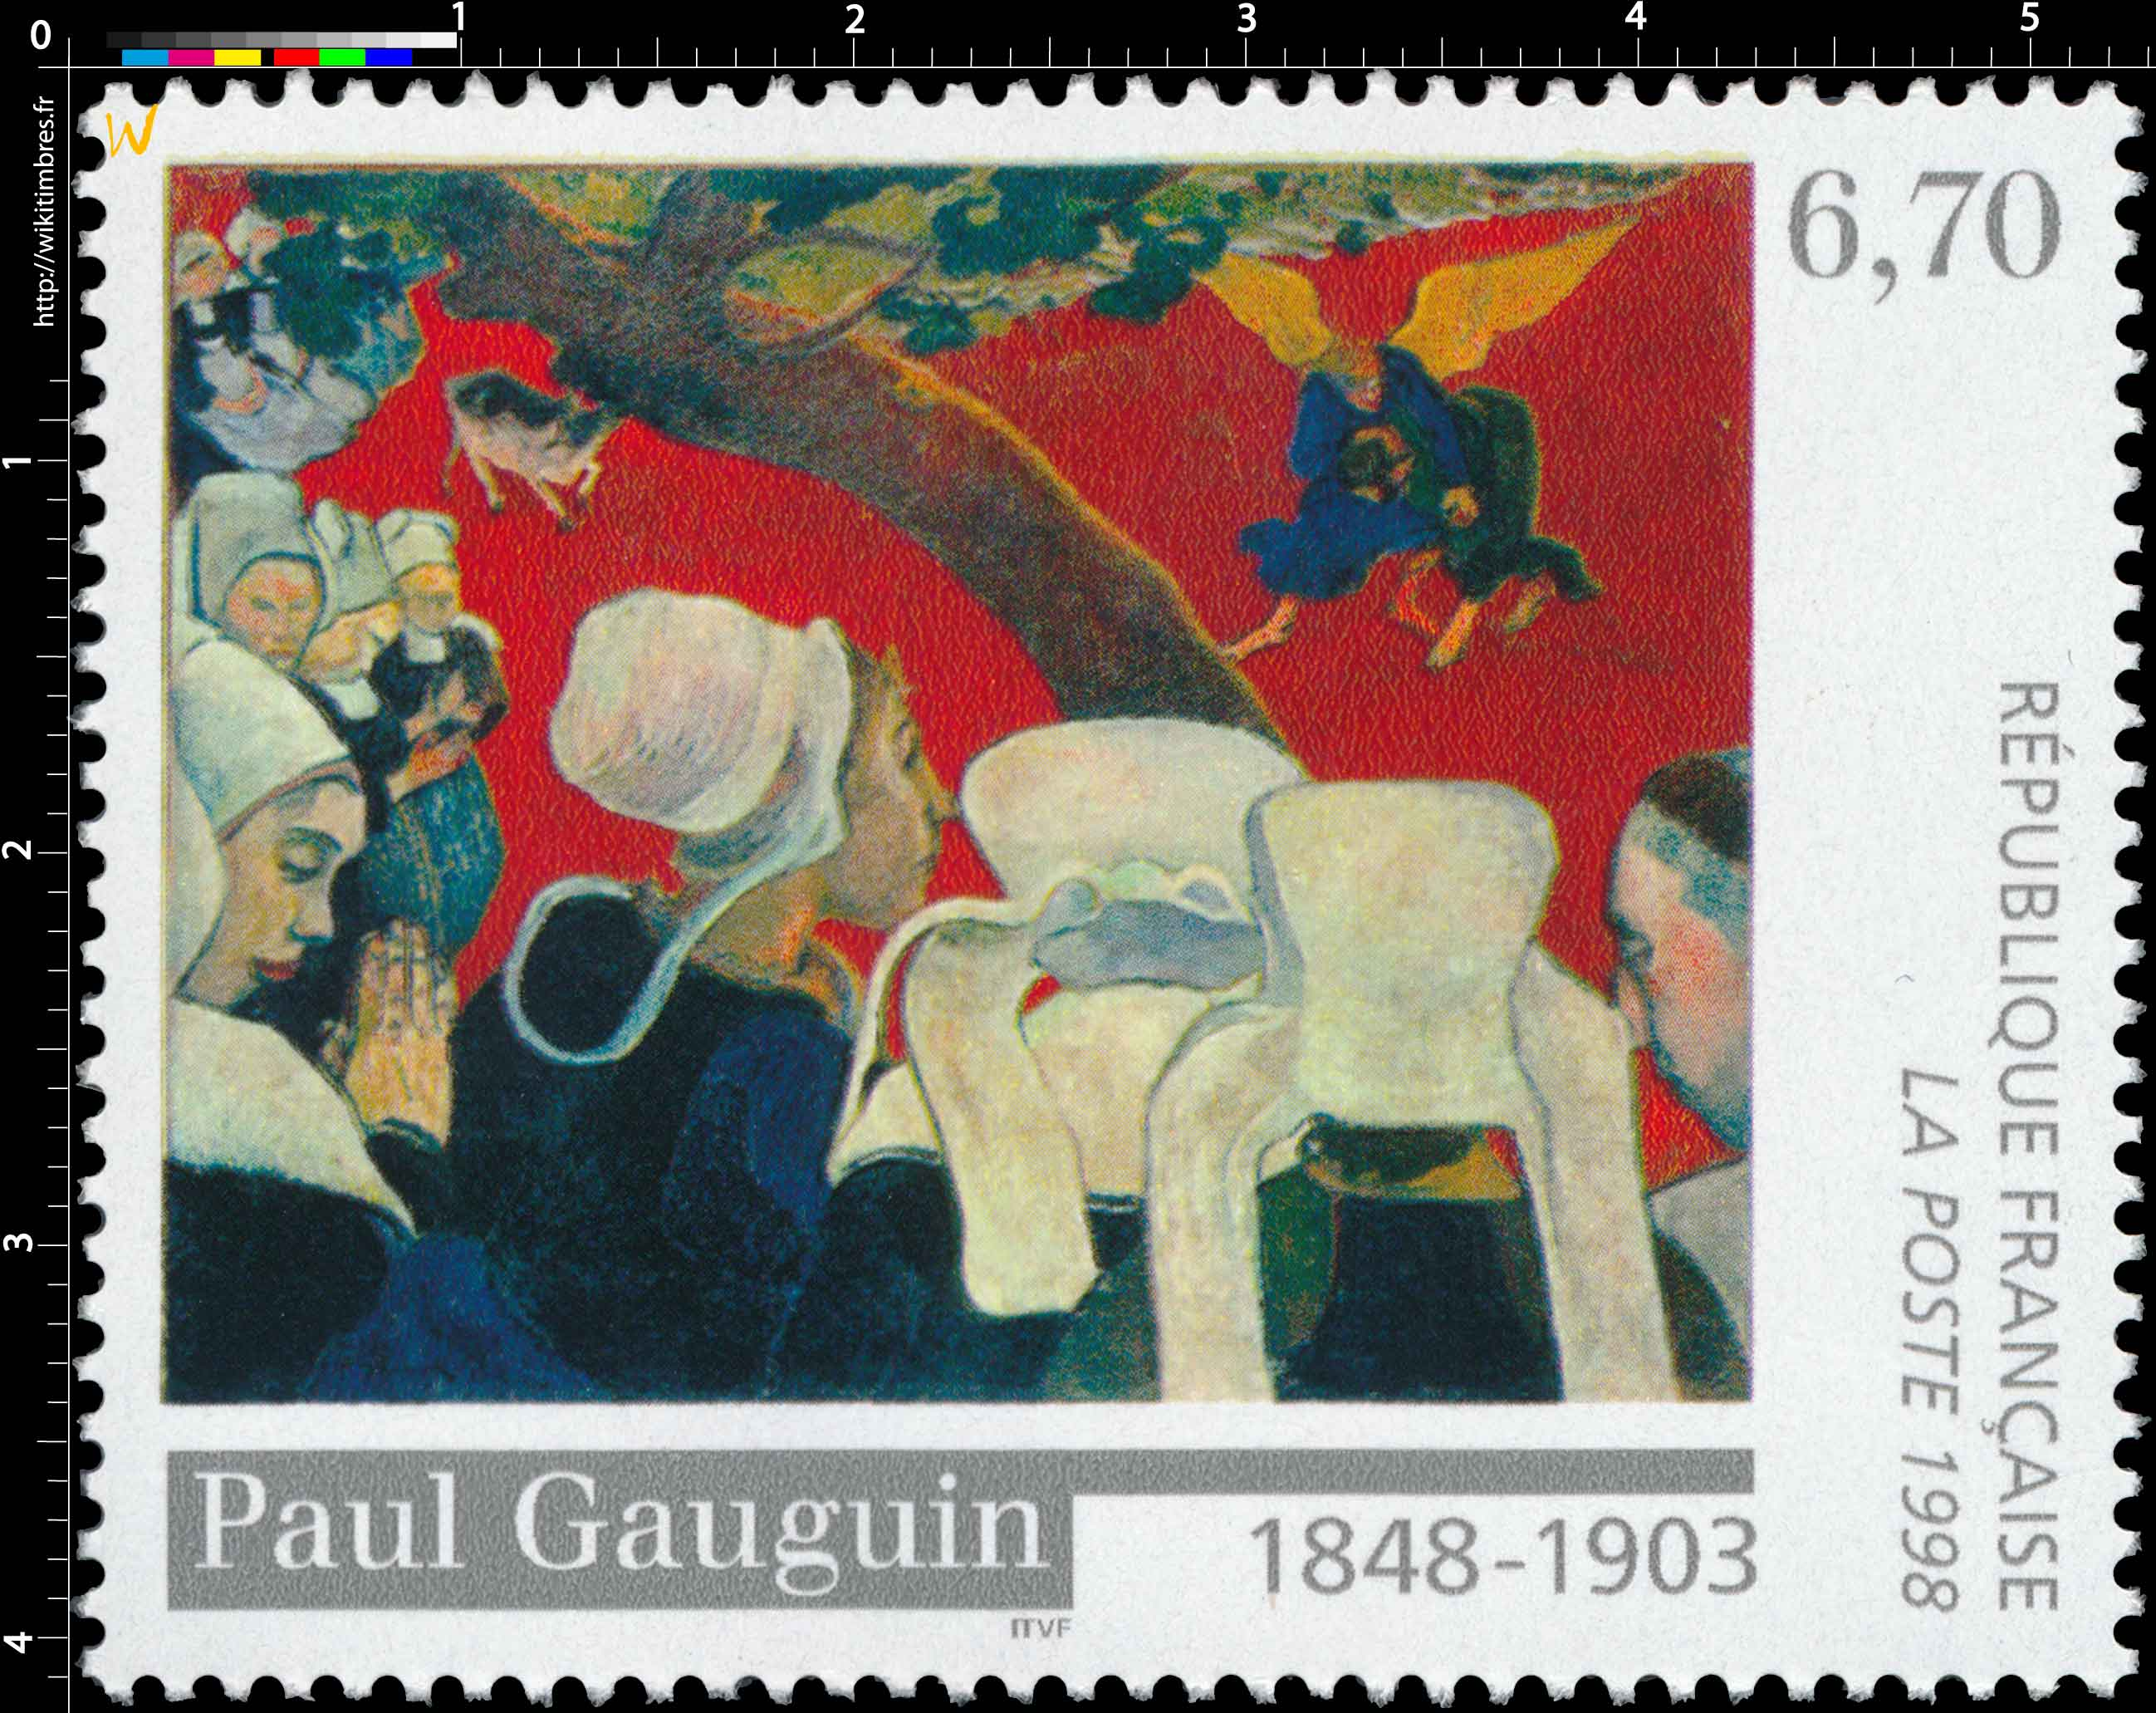 1998 Paul Gauguin 1848-1903